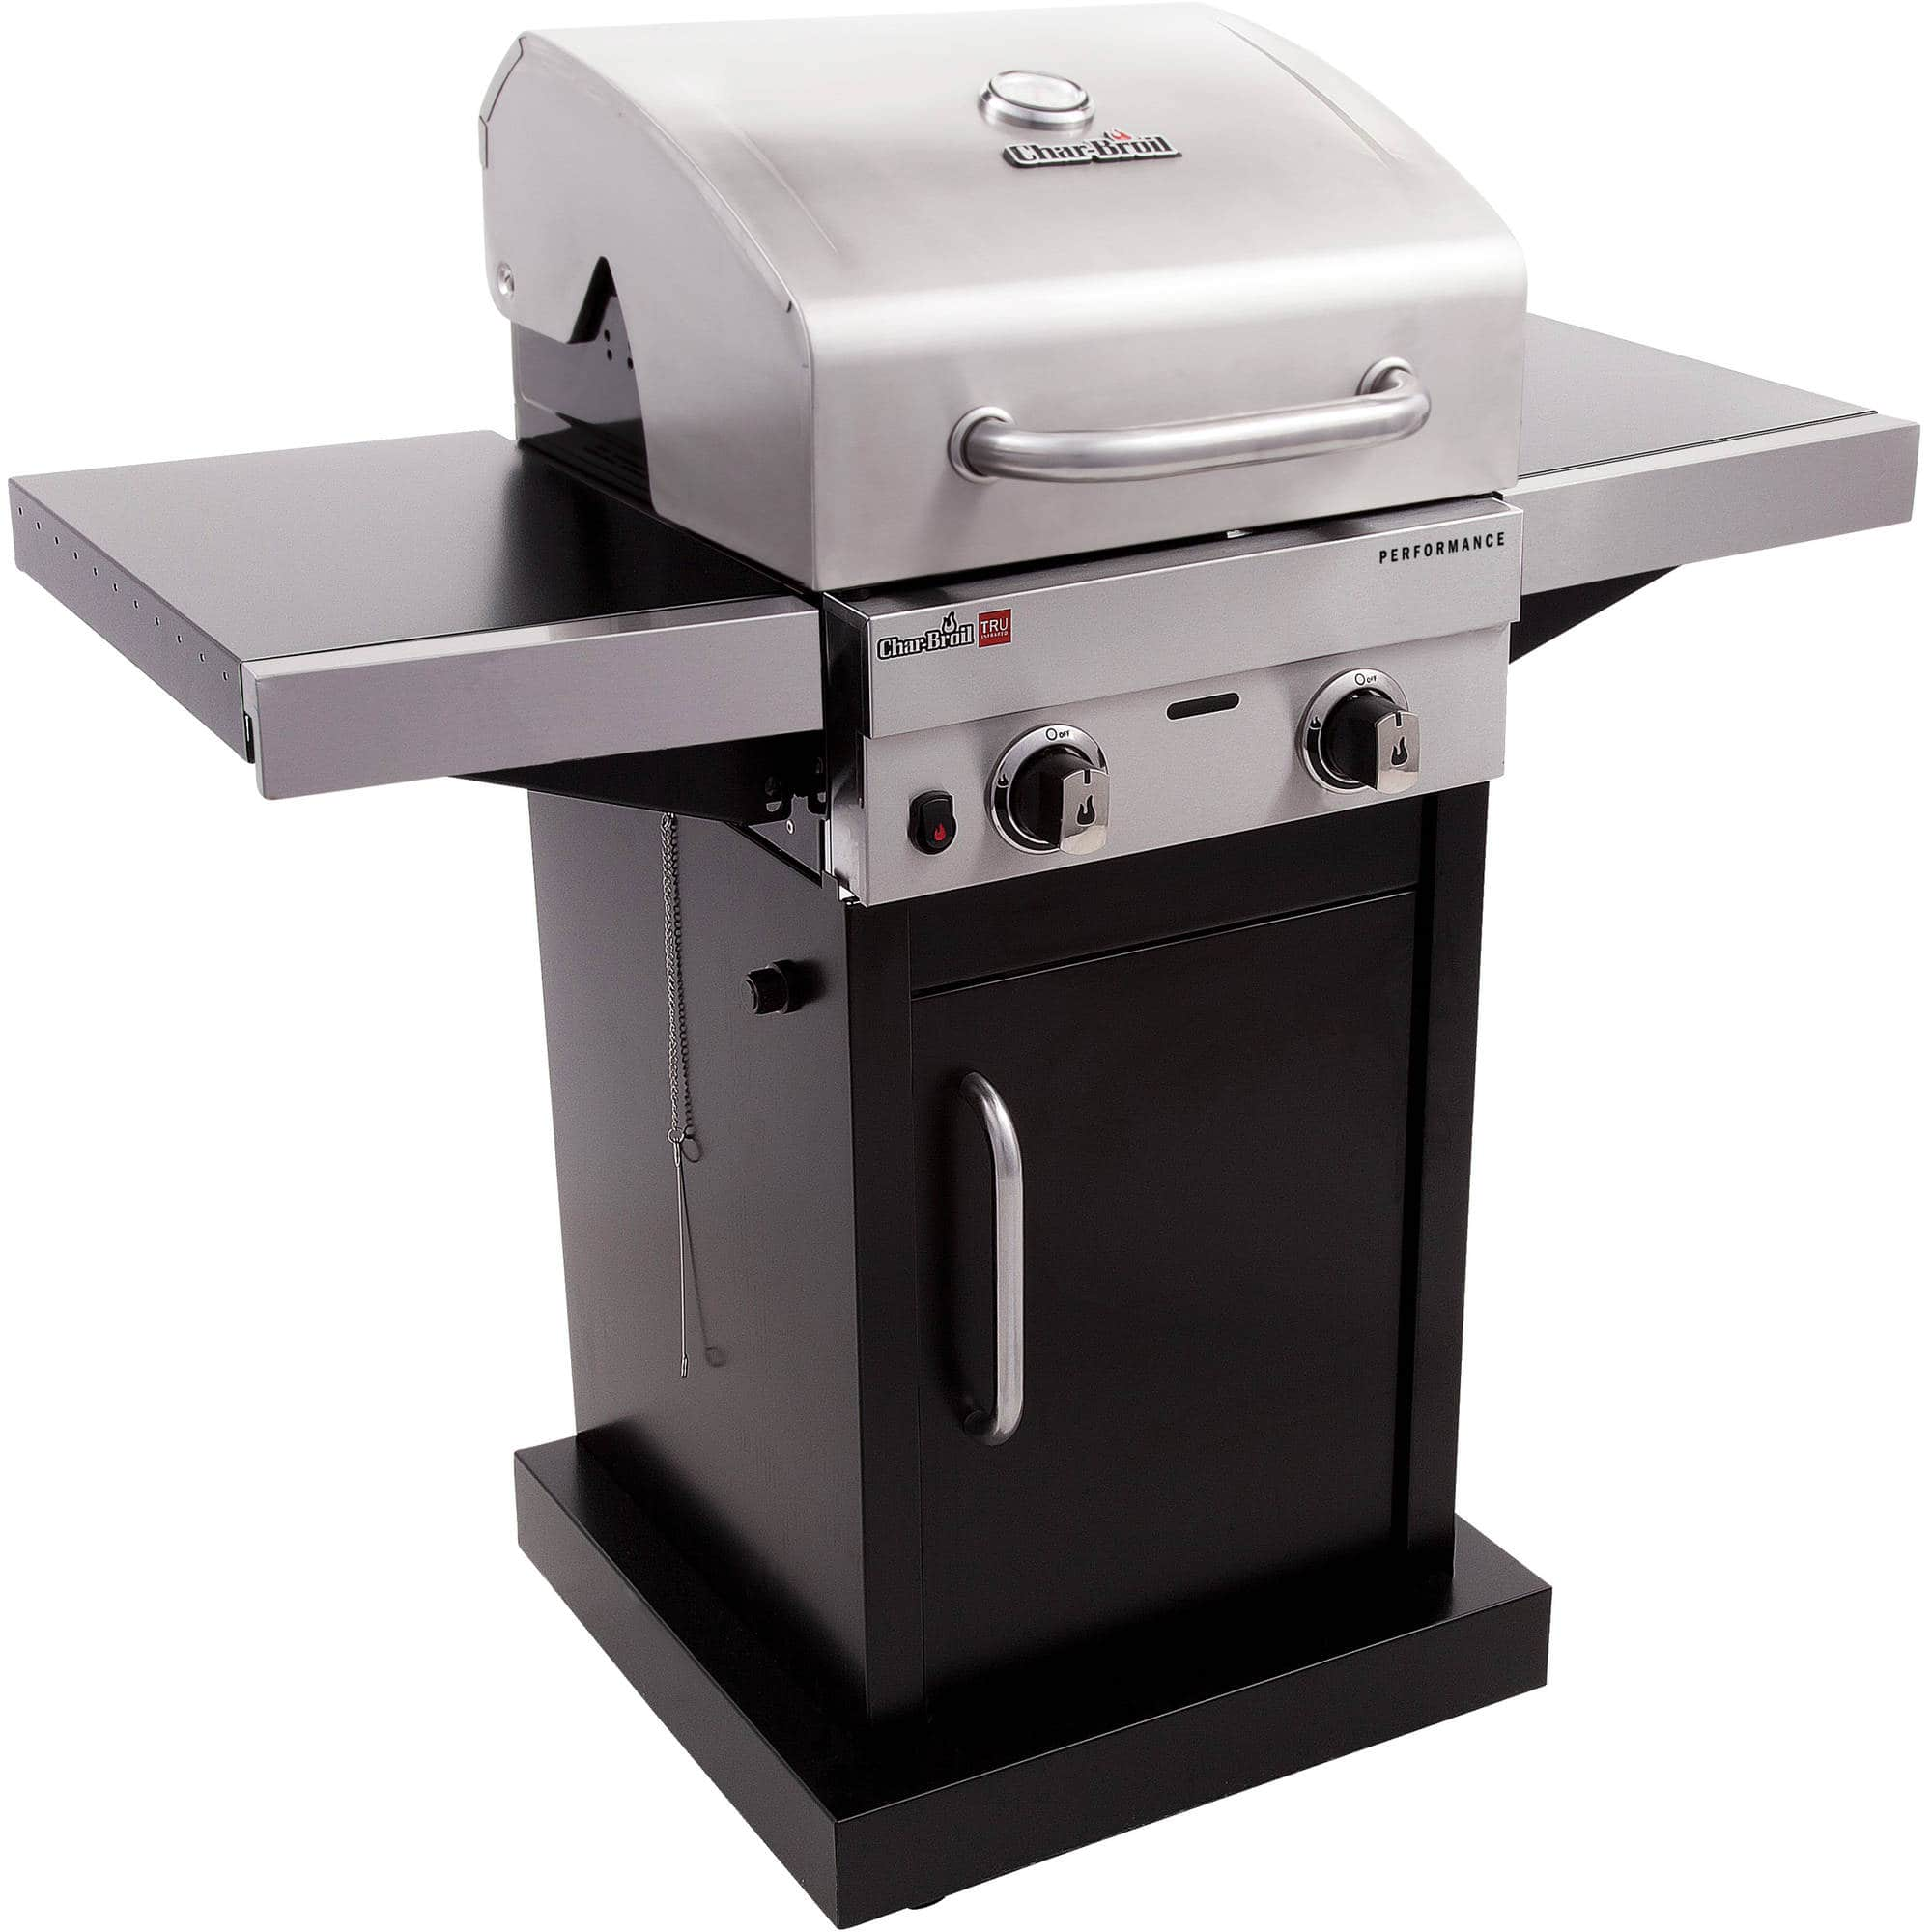 wm b u0026m char broil tru infrared and gas grill reg 229 clearanced